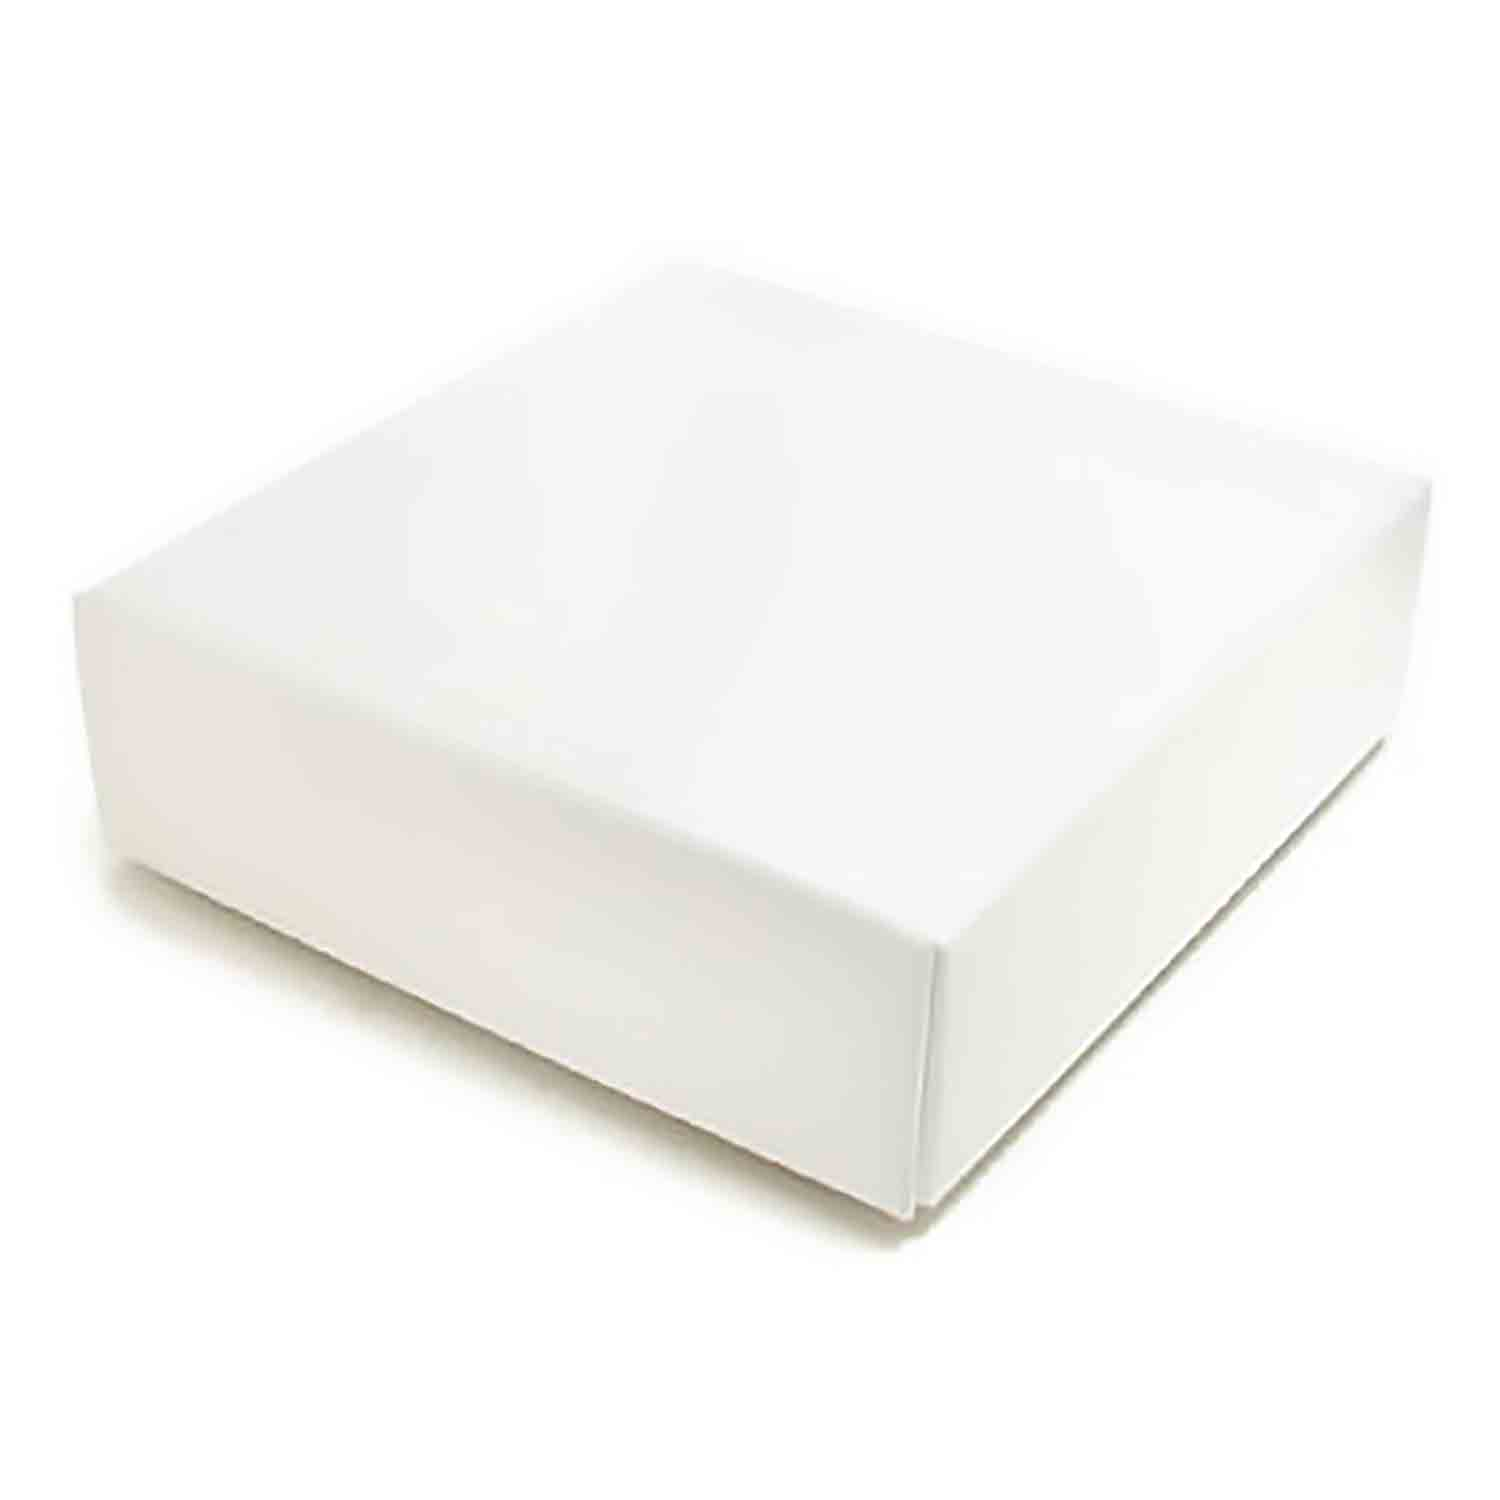 3 oz. White Candy Box